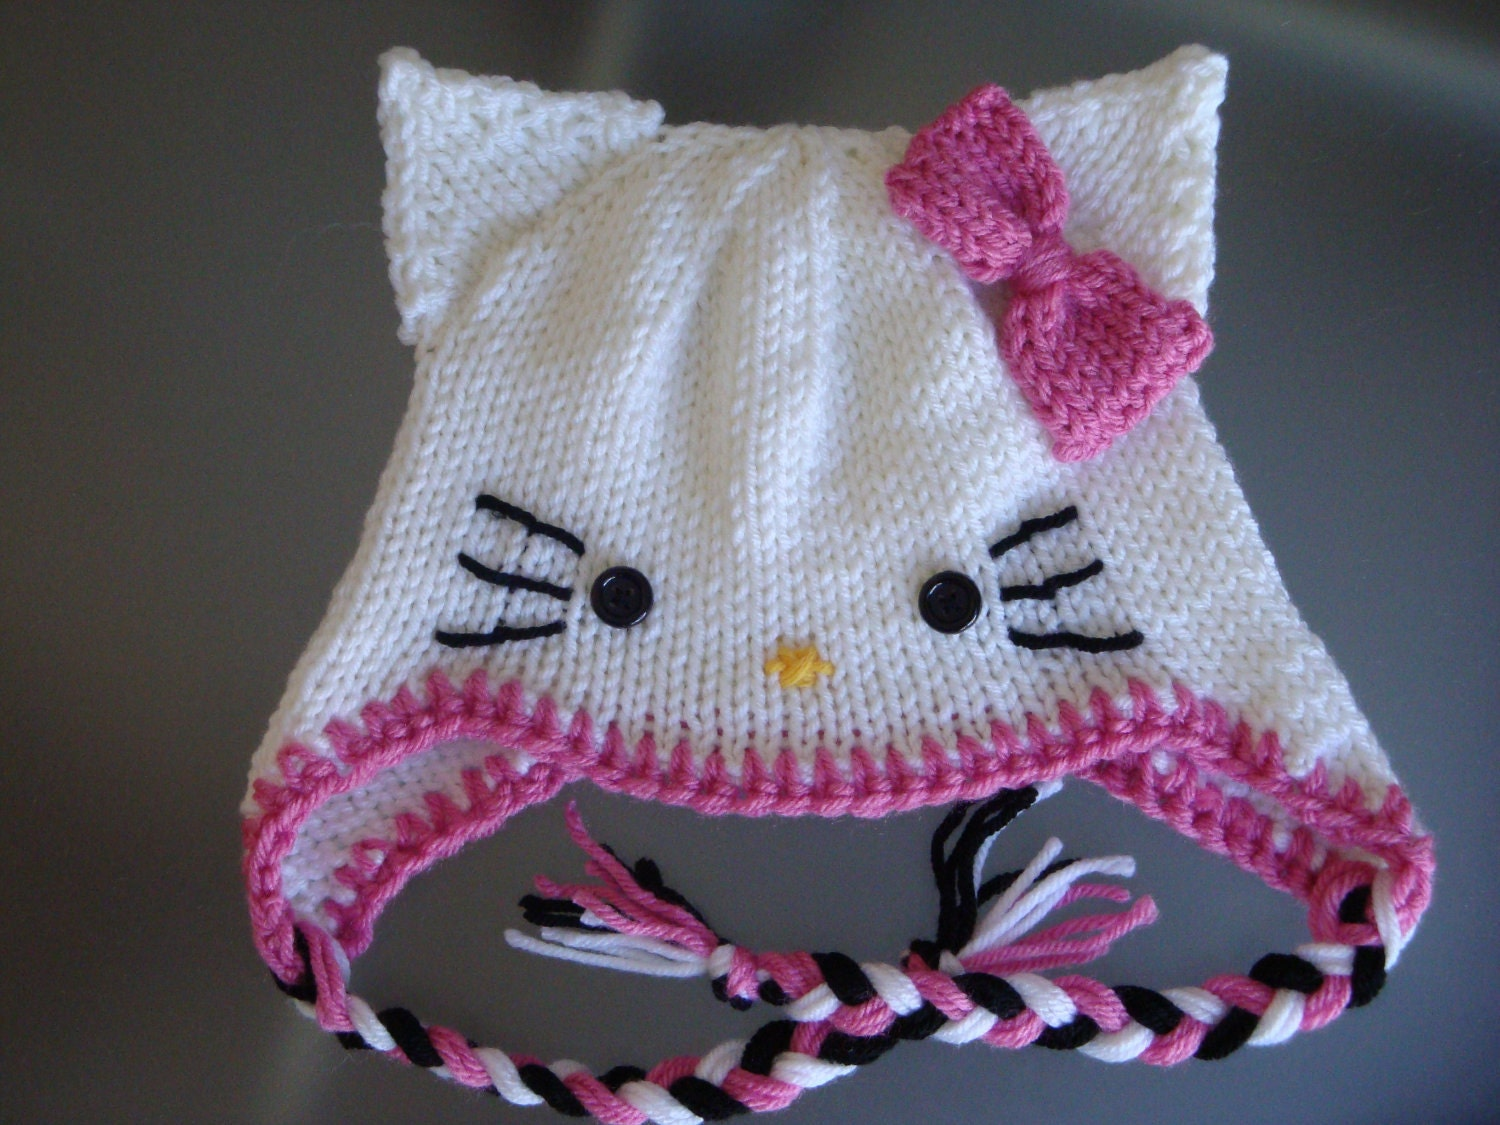 Knitting Pattern For Hello Kitty Hat : Hello Kitty Hat with Earflaps and Pink Bow Newborn to Adult